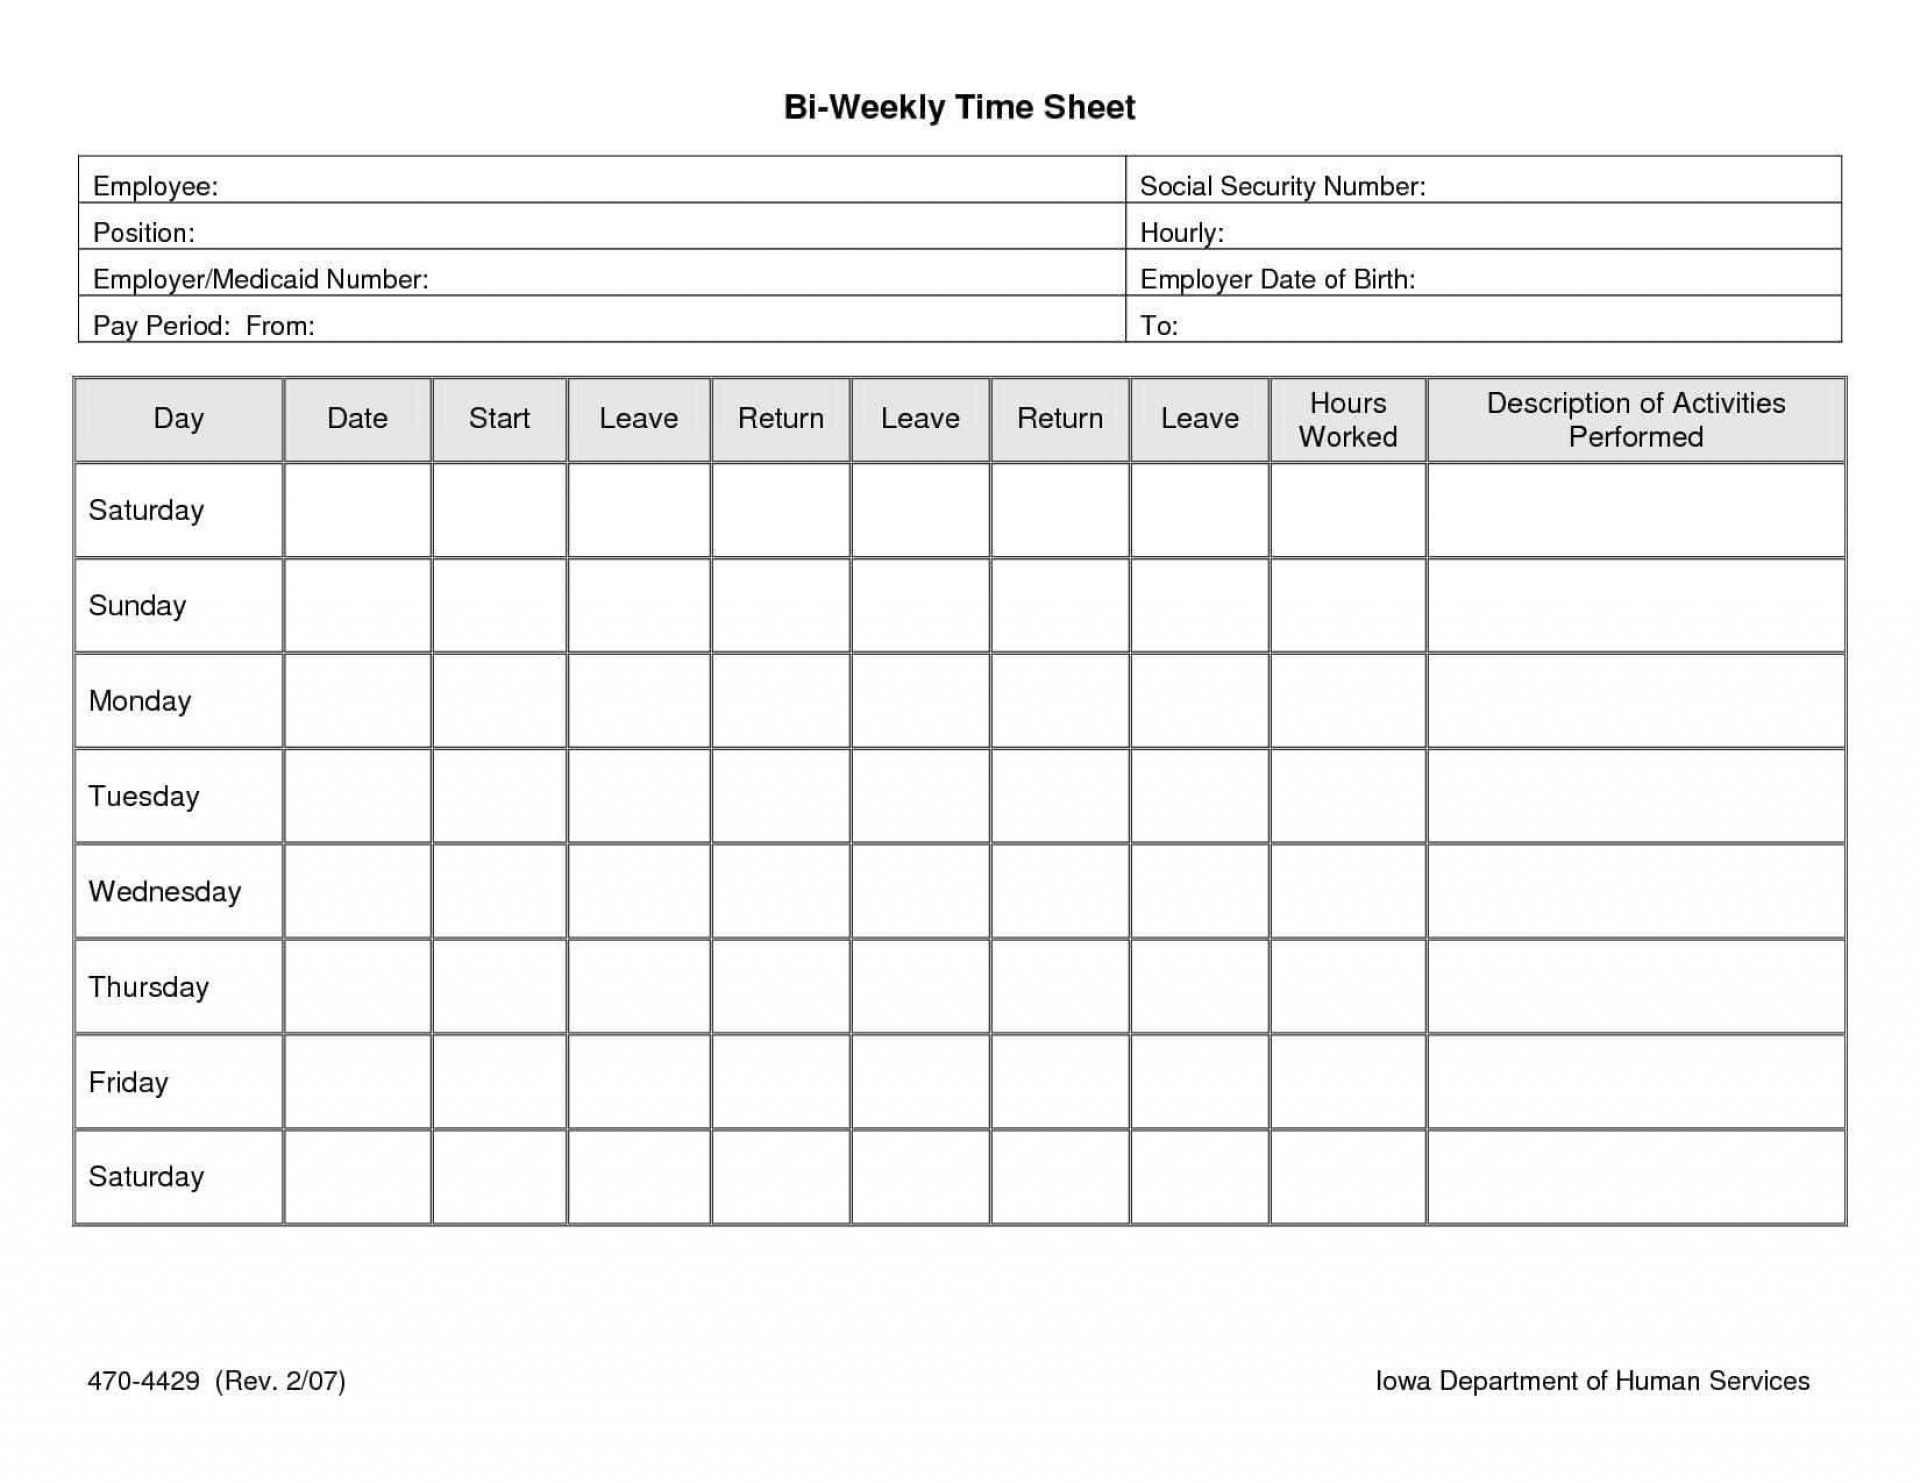 002 Awful Employee Time Card Sample Concept  Free Form Template1920